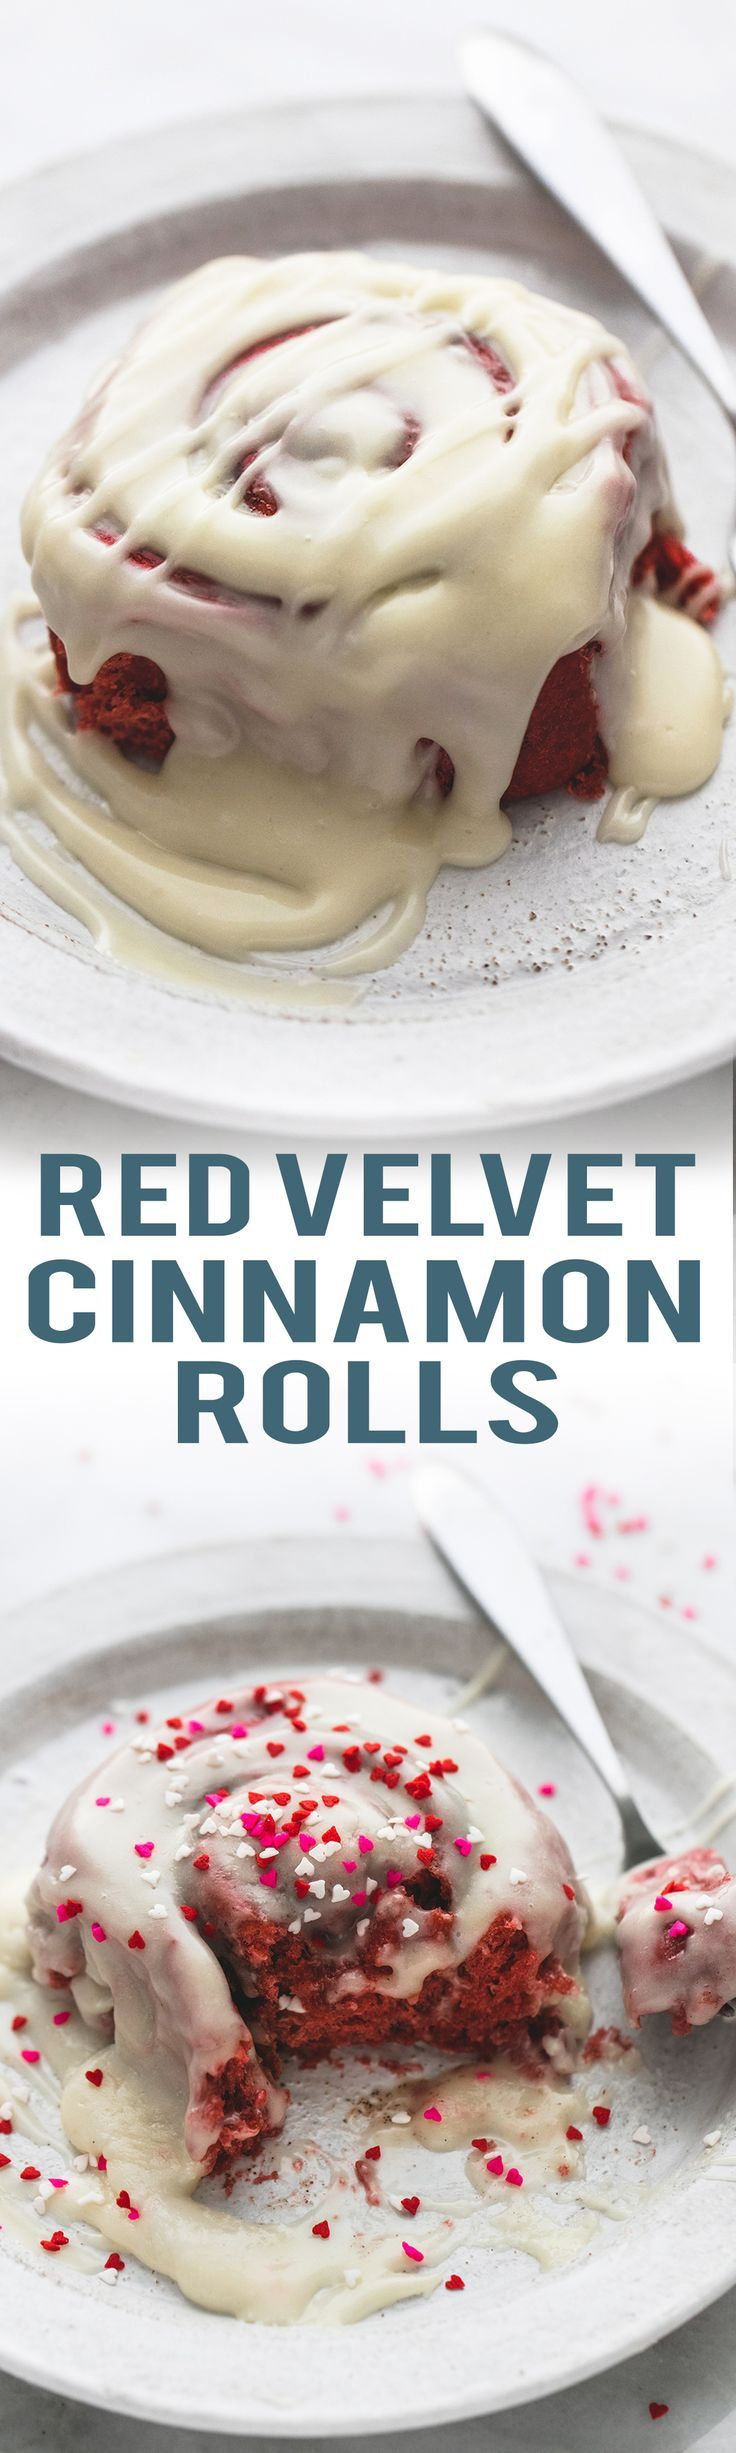 Super fluffy Red Velvet Cinnamon Rolls with Brown Butter Cream Cheese Frosting | lecremedelacrumb.com